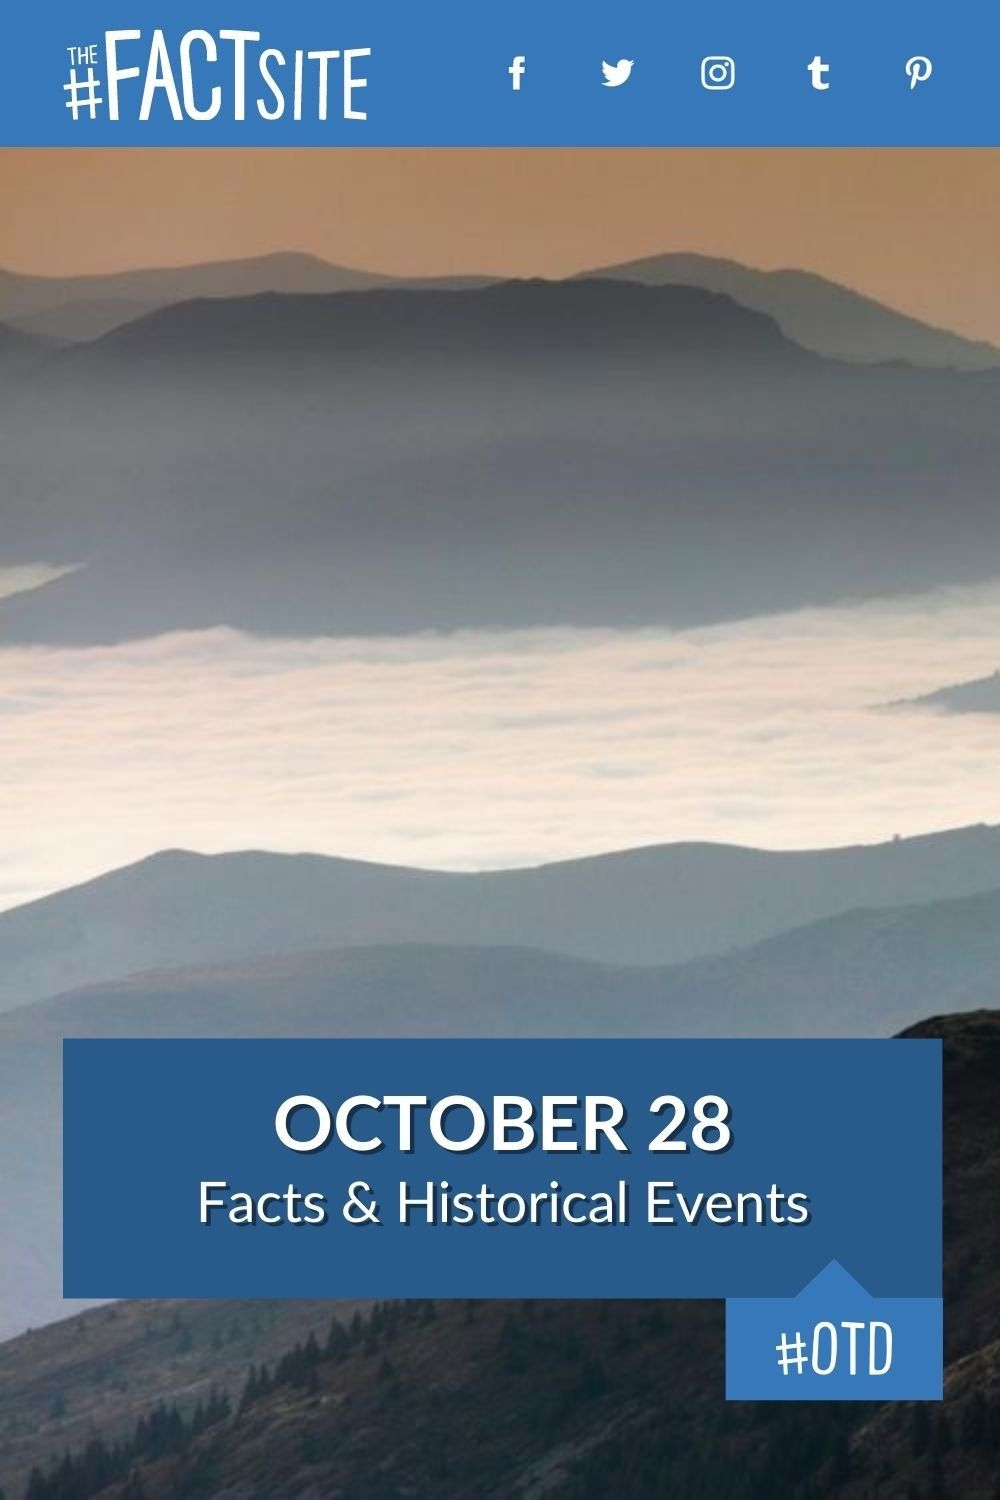 Facts & Historic Events That Happened on October 28